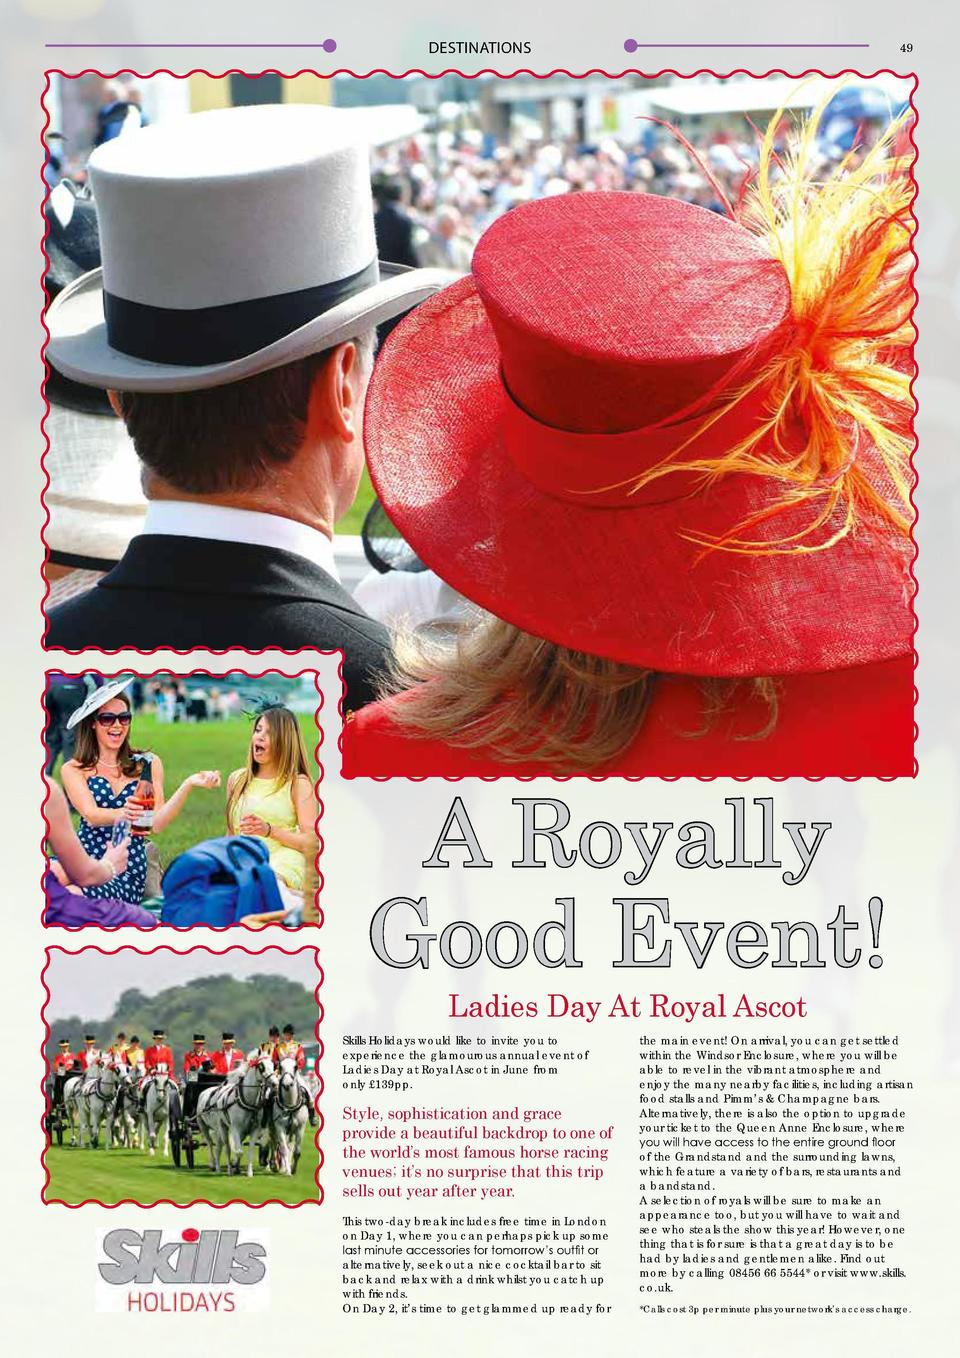 48  DESTINATIONS  DESTINATIONS  49  A Royally Good Event  Ladies Day At Royal Ascot  Skills Holidays would like to invite ...